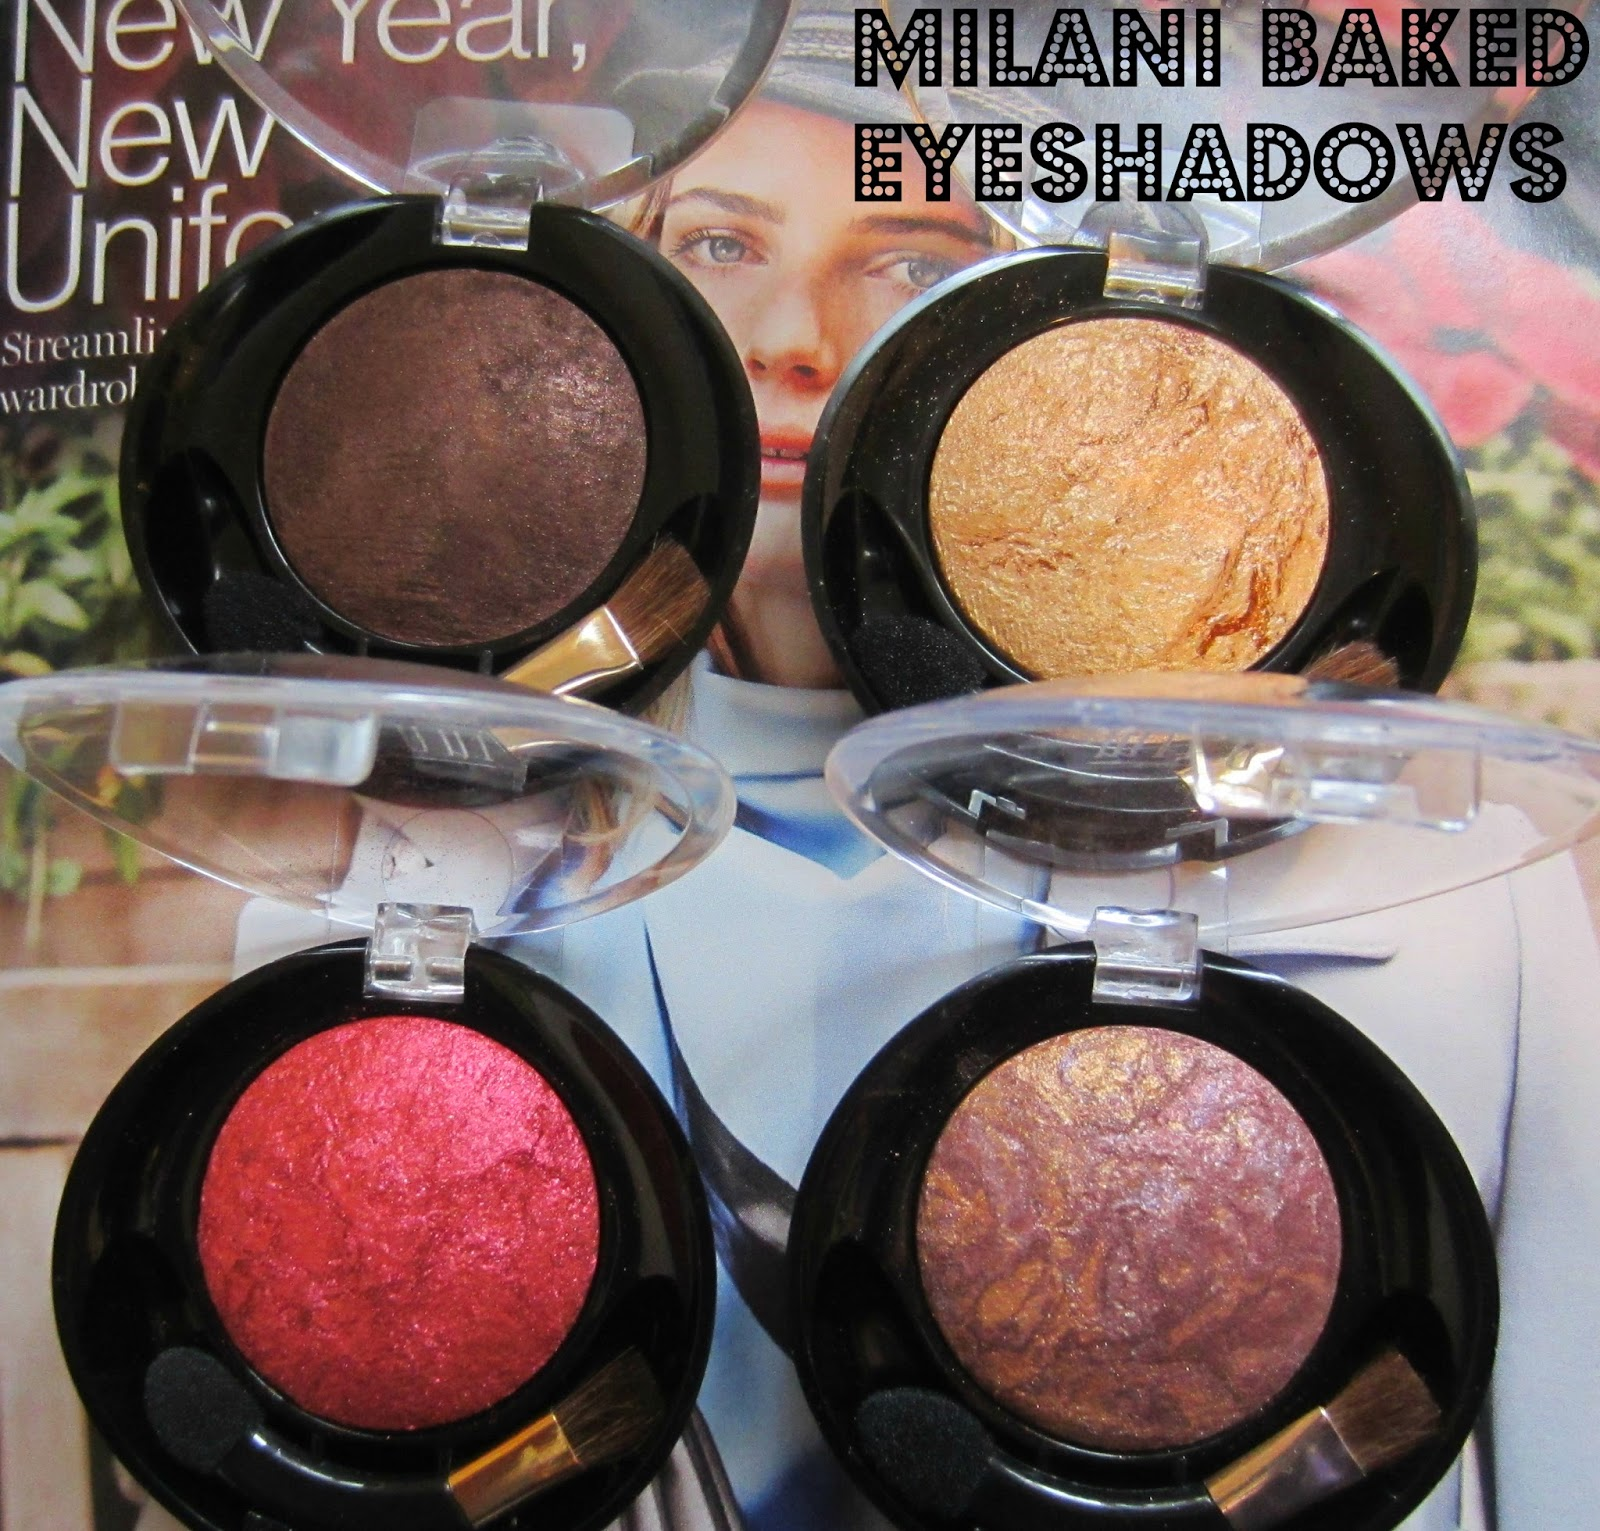 Milani Baked Eyeshadows in I heart You, Drench In Gold, Fusion, Rich Java